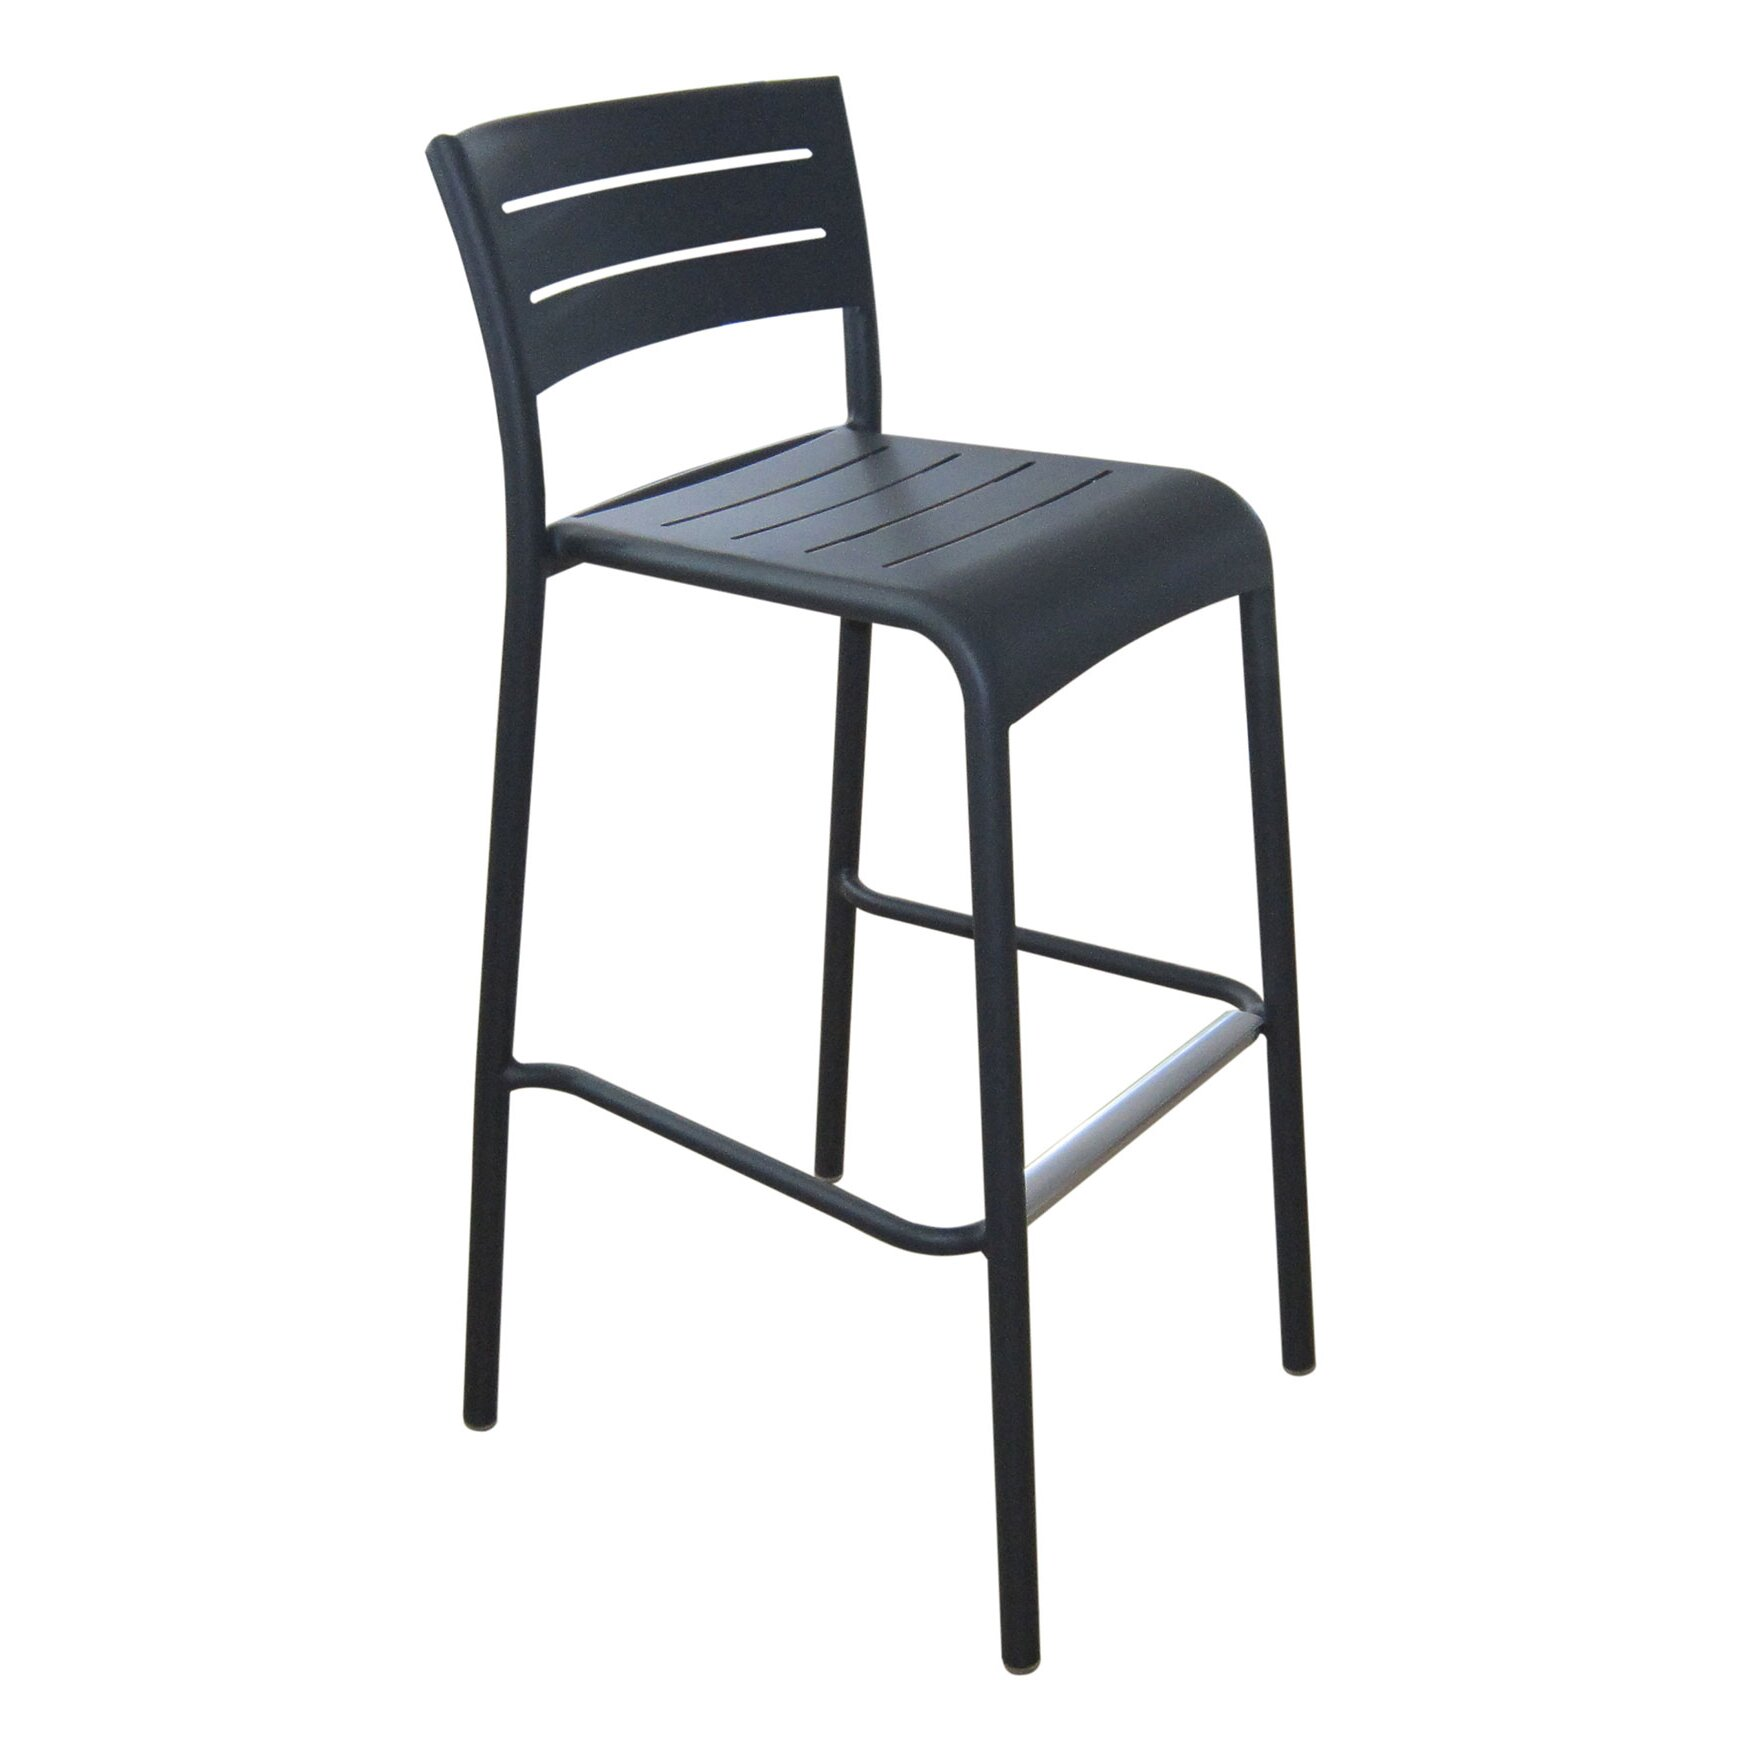 Florida Seating 30quot Bar Stool amp Reviews Wayfair Supply : 415 Bar Stool AL 5000 from www.wayfairsupply.com size 1760 x 1760 jpeg 102kB